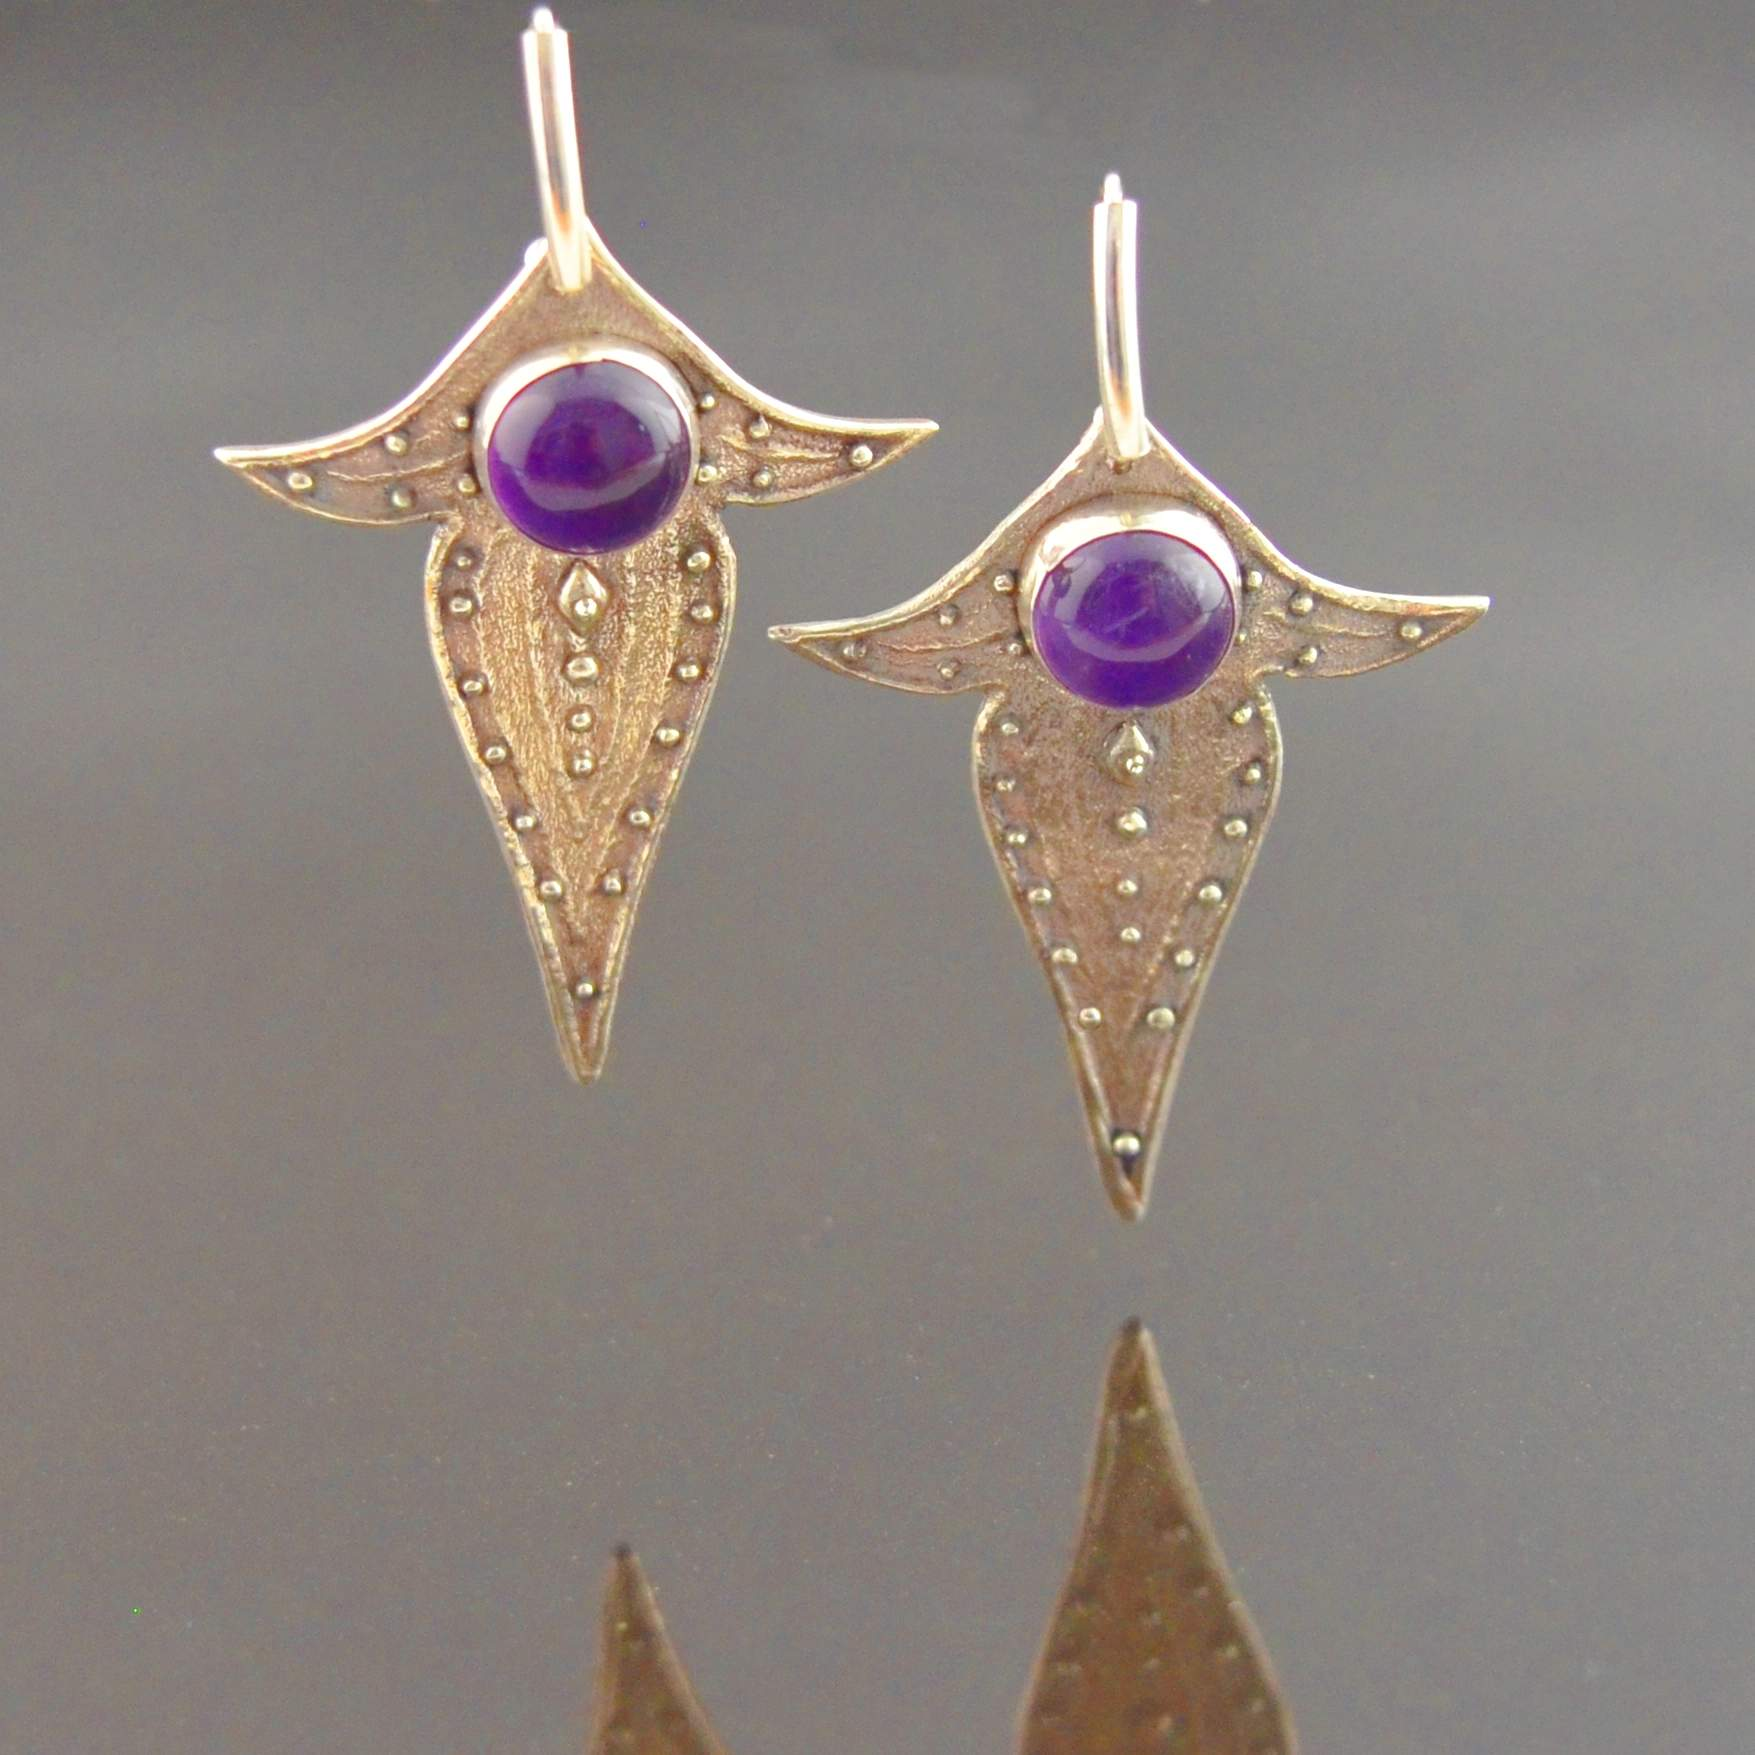 Moorish Stone Set Earrings by Tracey Spurgin of Craftworx Jewellery Workshops